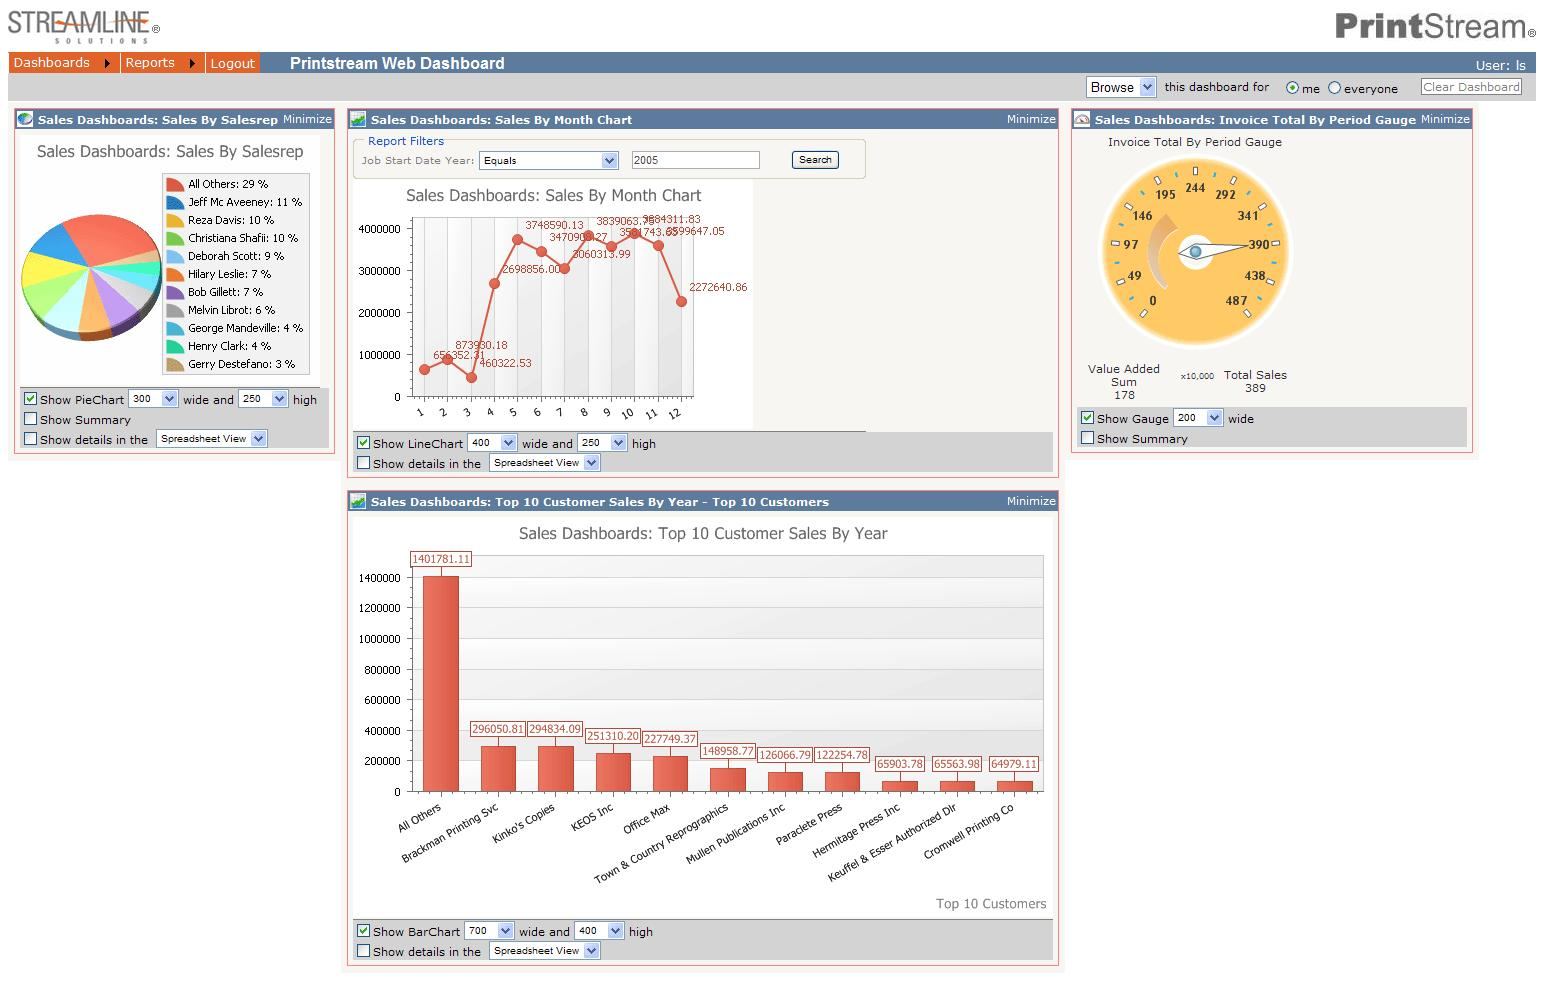 Web Dashboard (click for full-scale image)